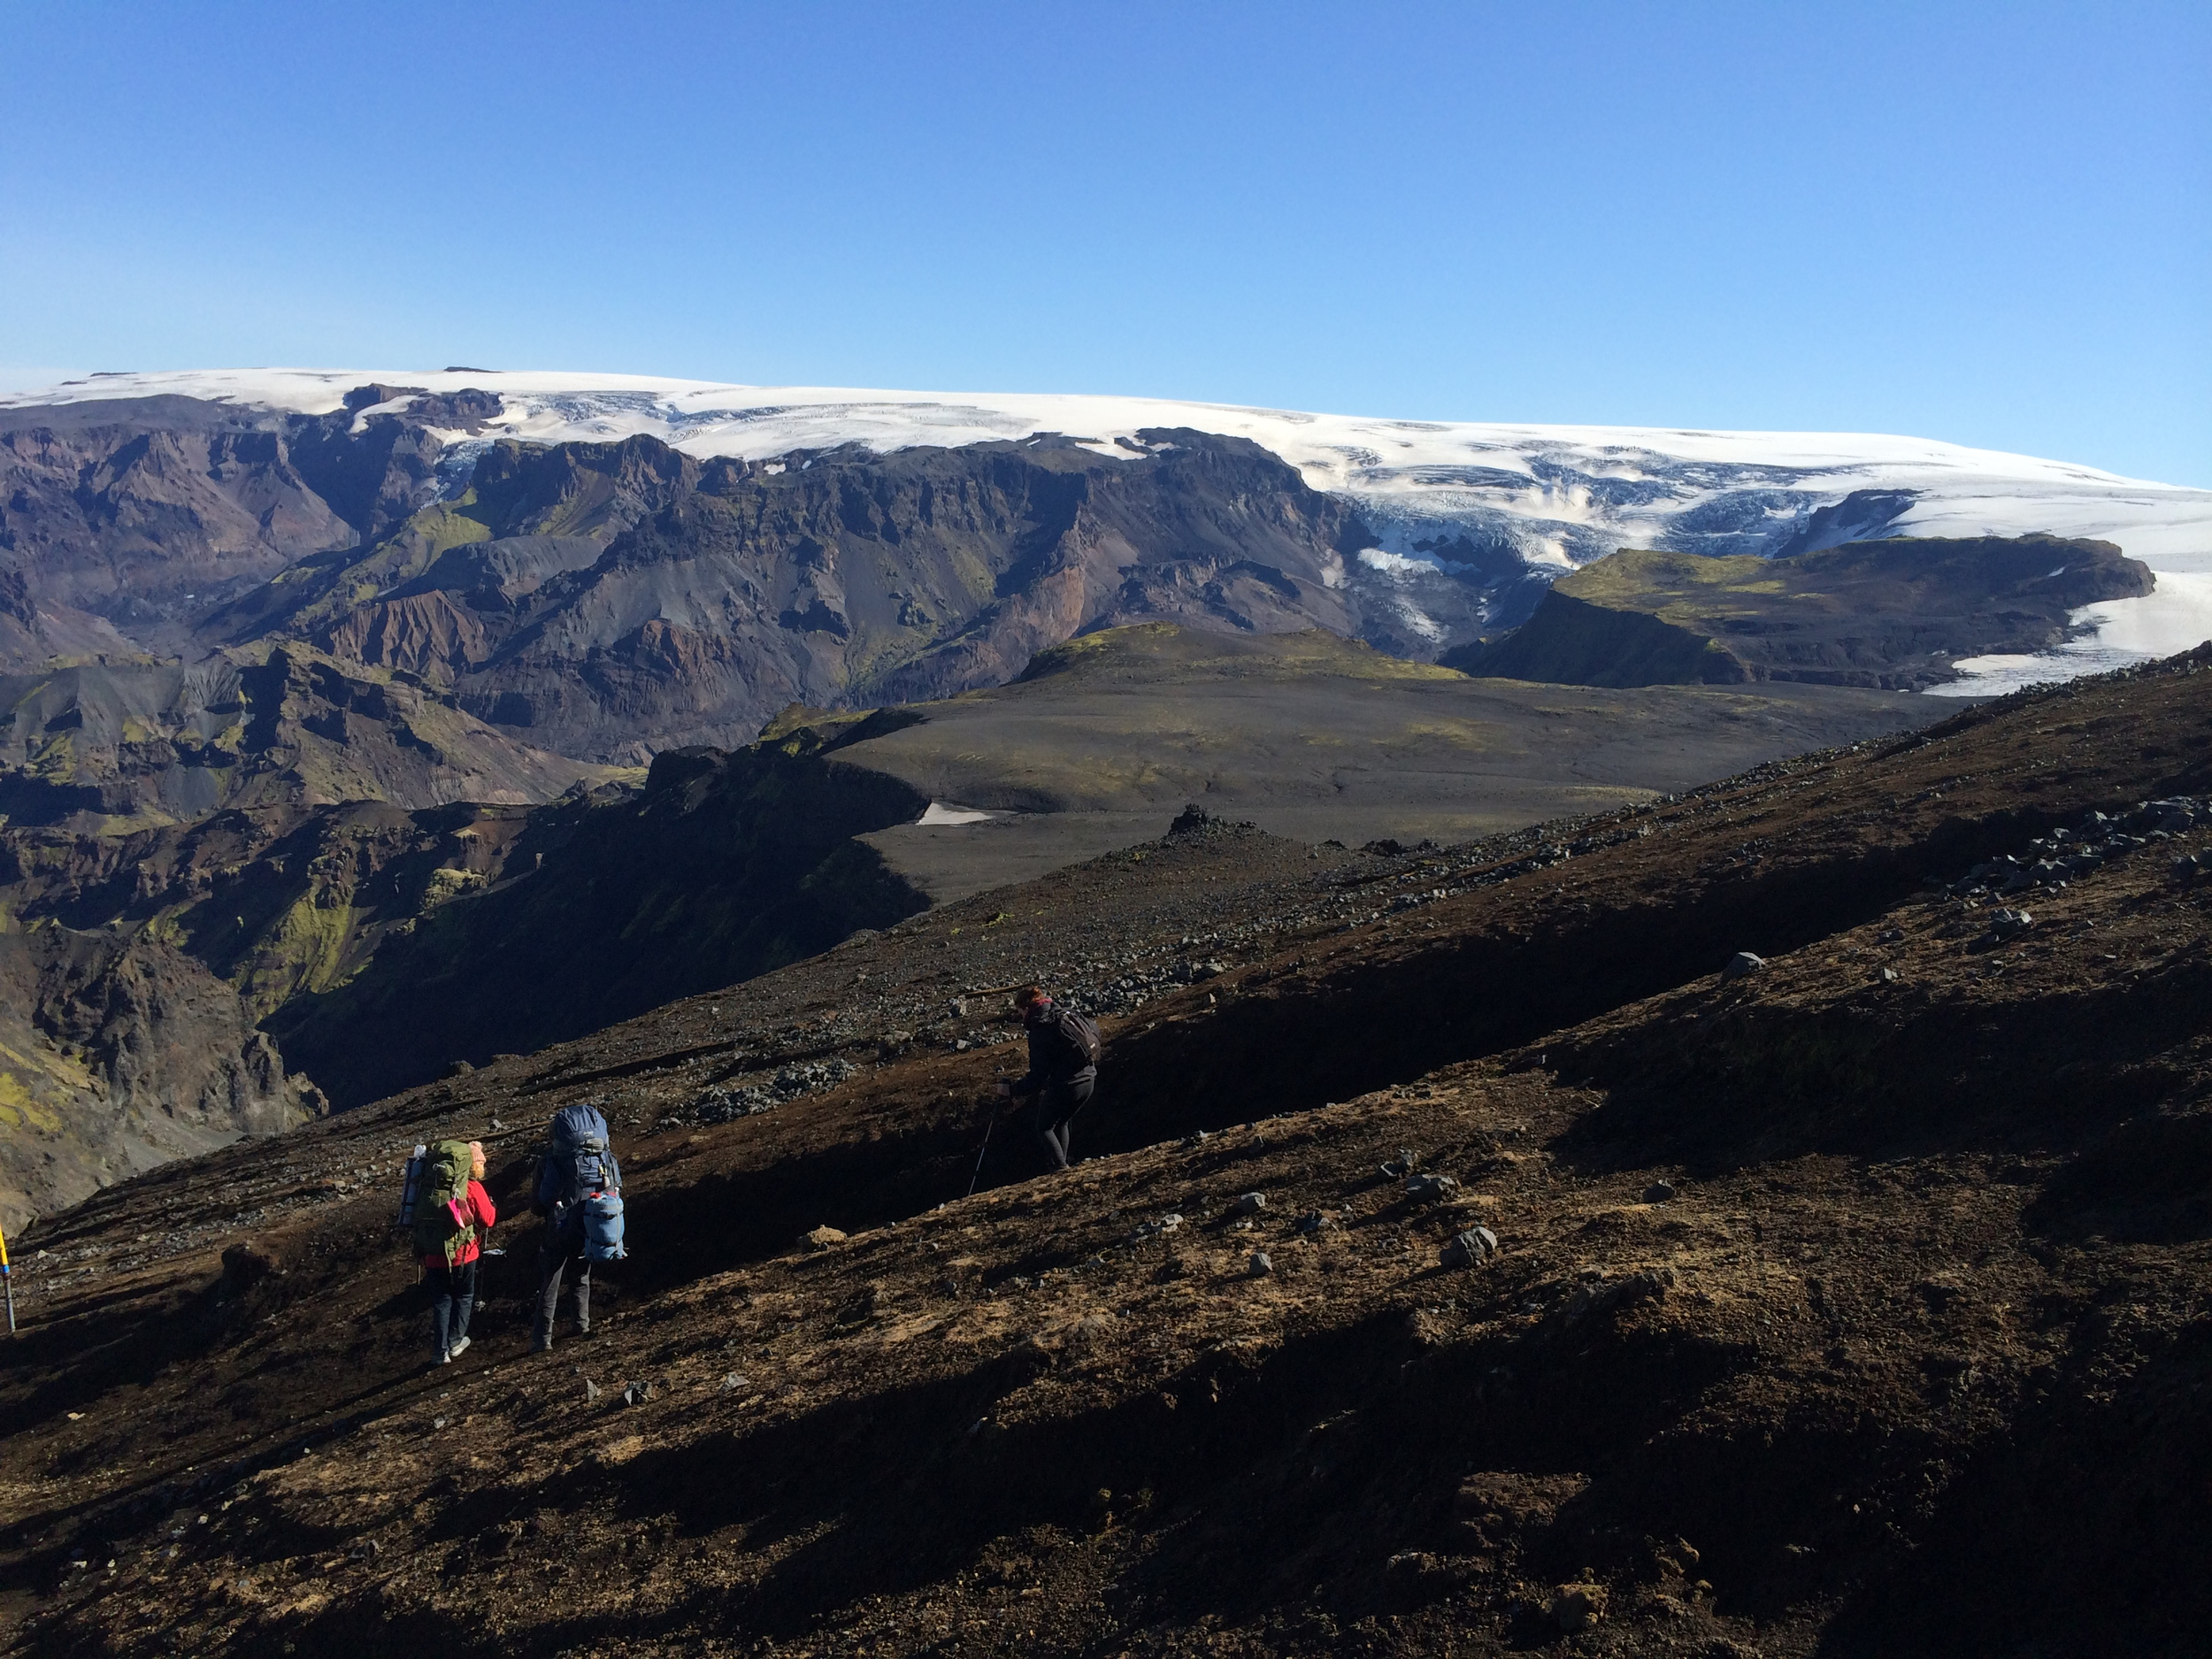 Walk down the mountain and watch the Eyjafjallajökull